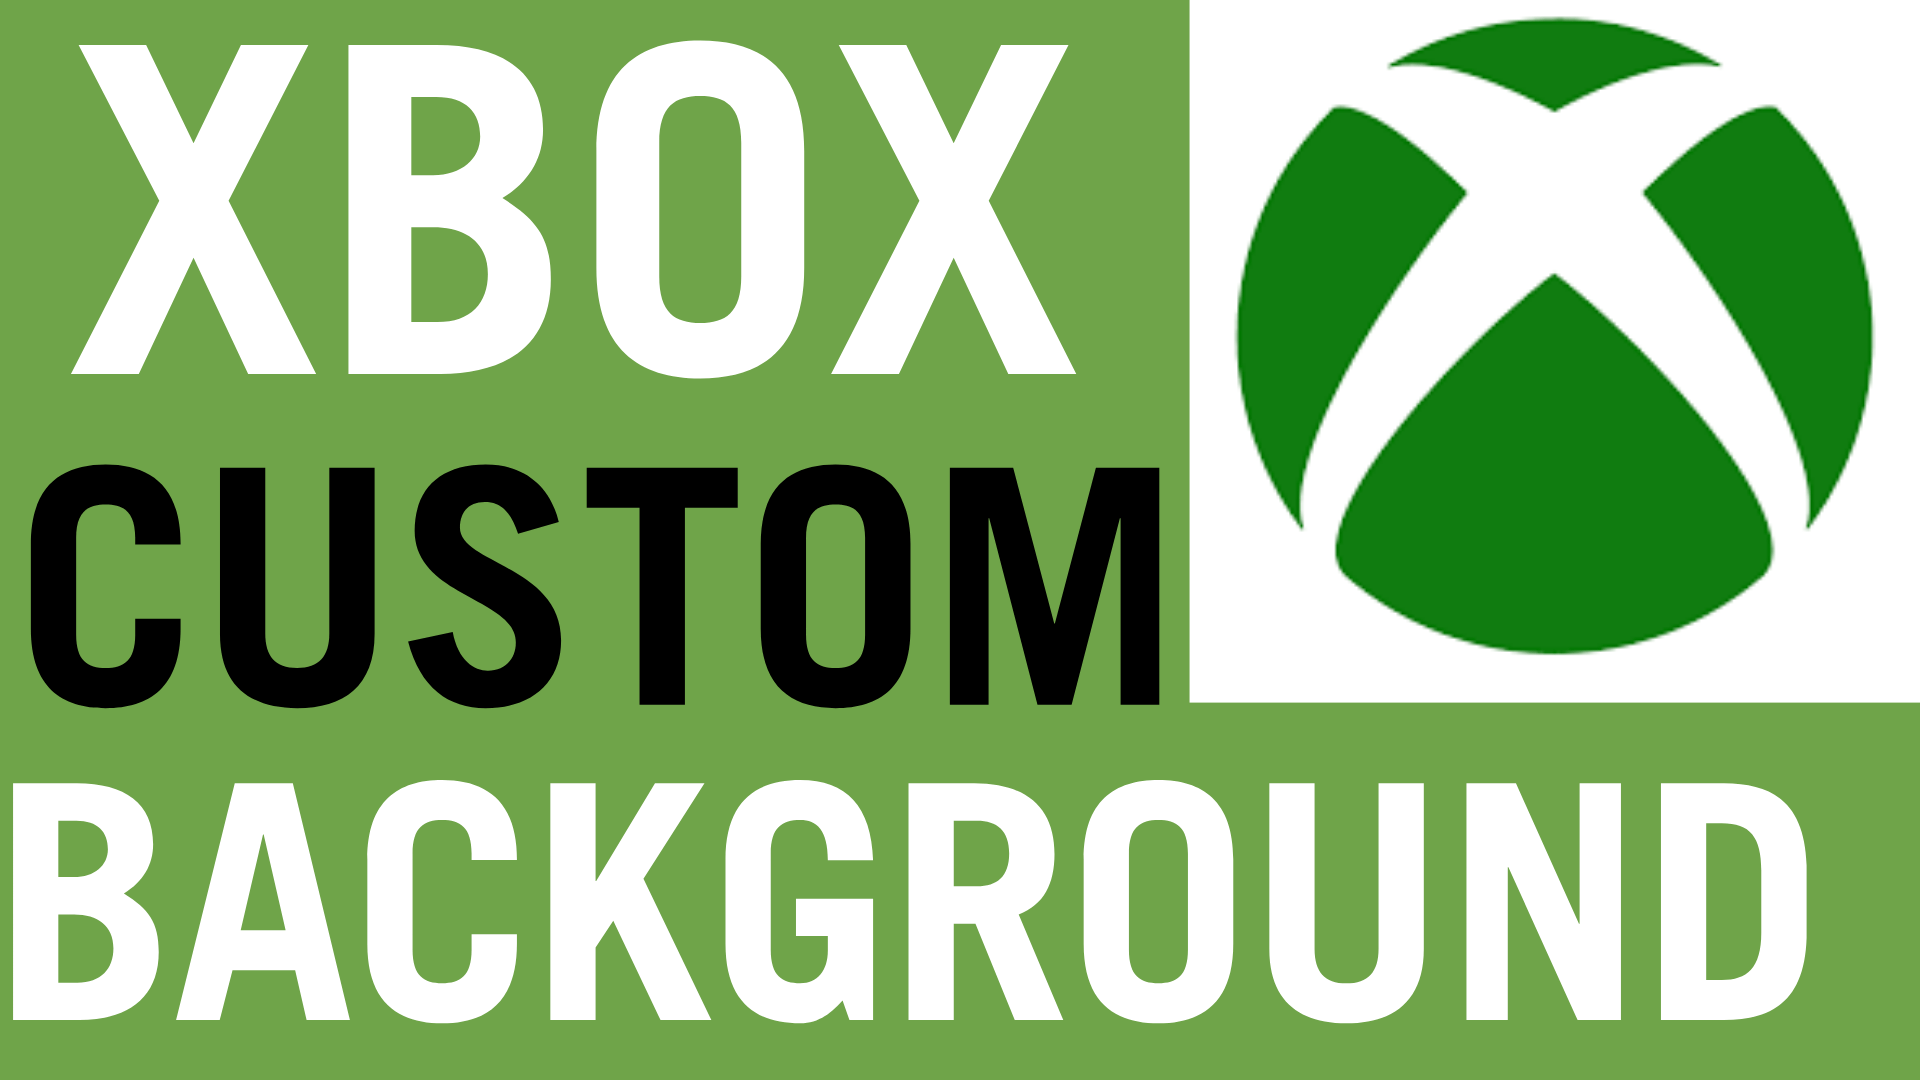 how to get custom background image on xbox one